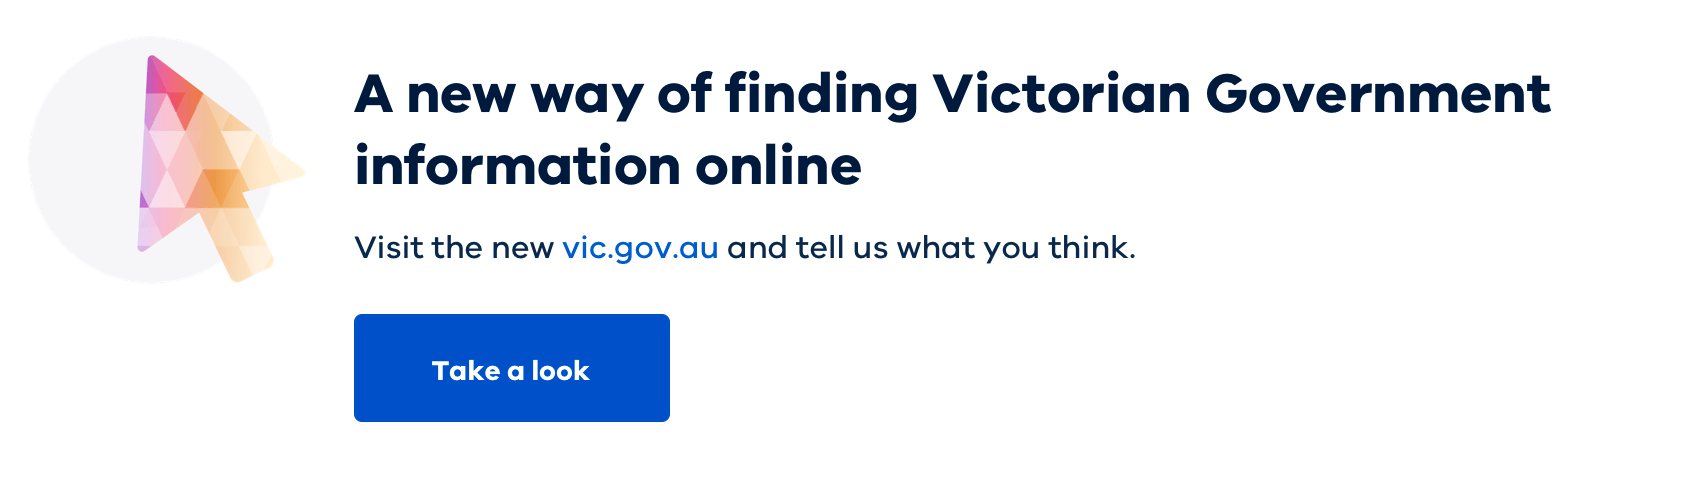 A new way of finding Victorian Government information online. Visit the new vic.gov.au and tell us what you think. Take a look.